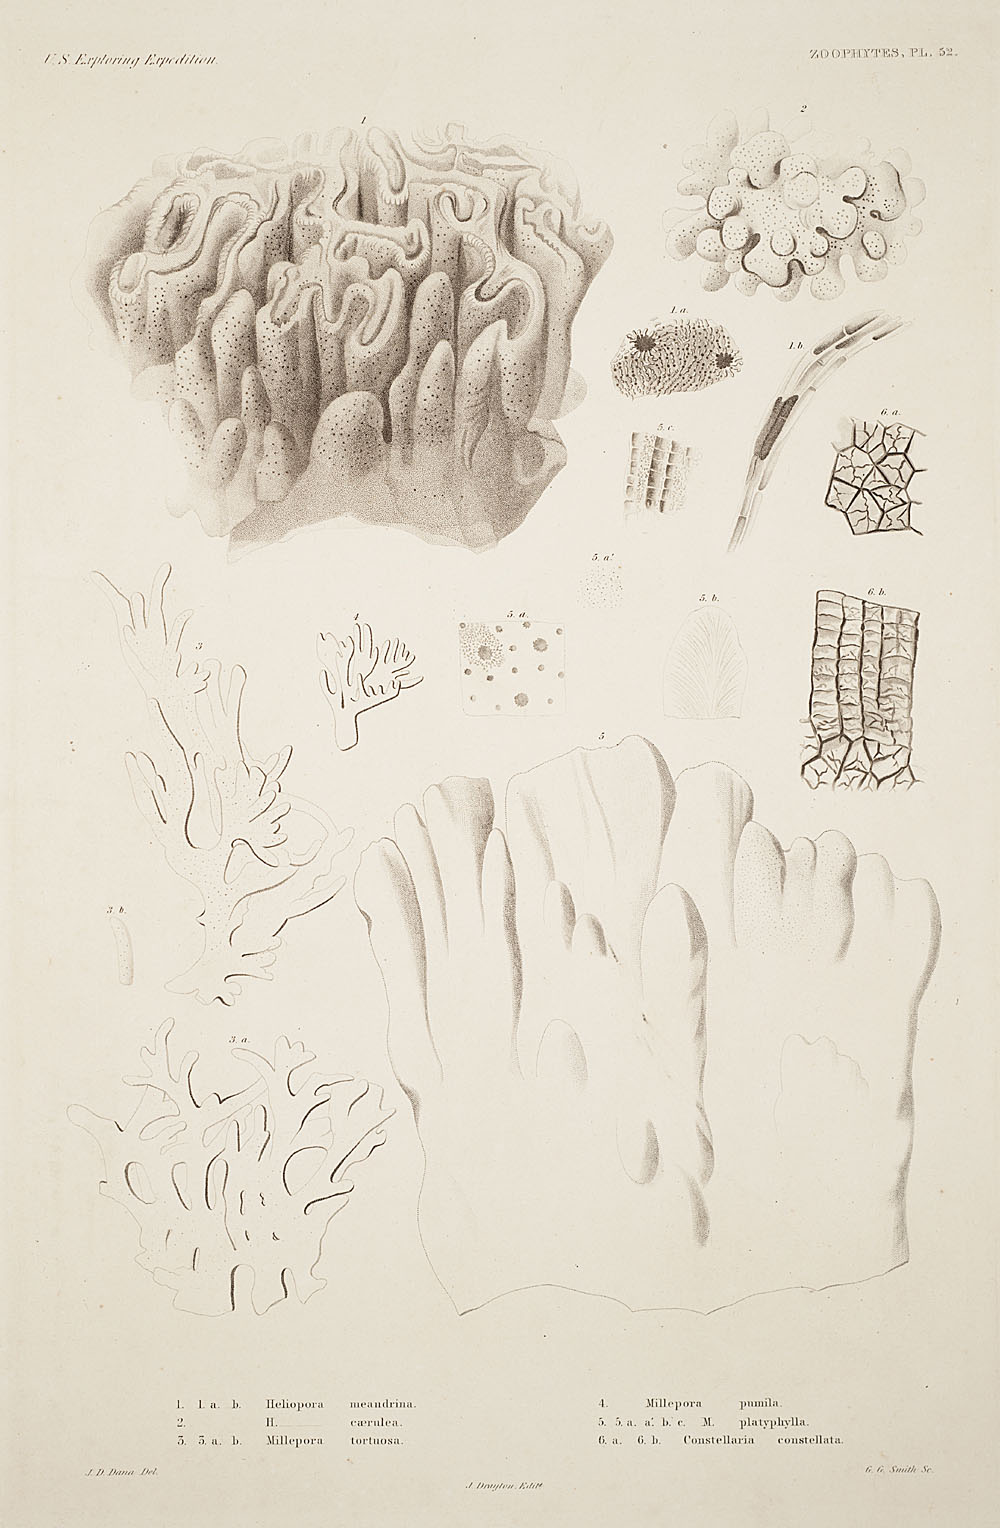 Zoophytes, Plate 52,  Image number:sil19-09-121b